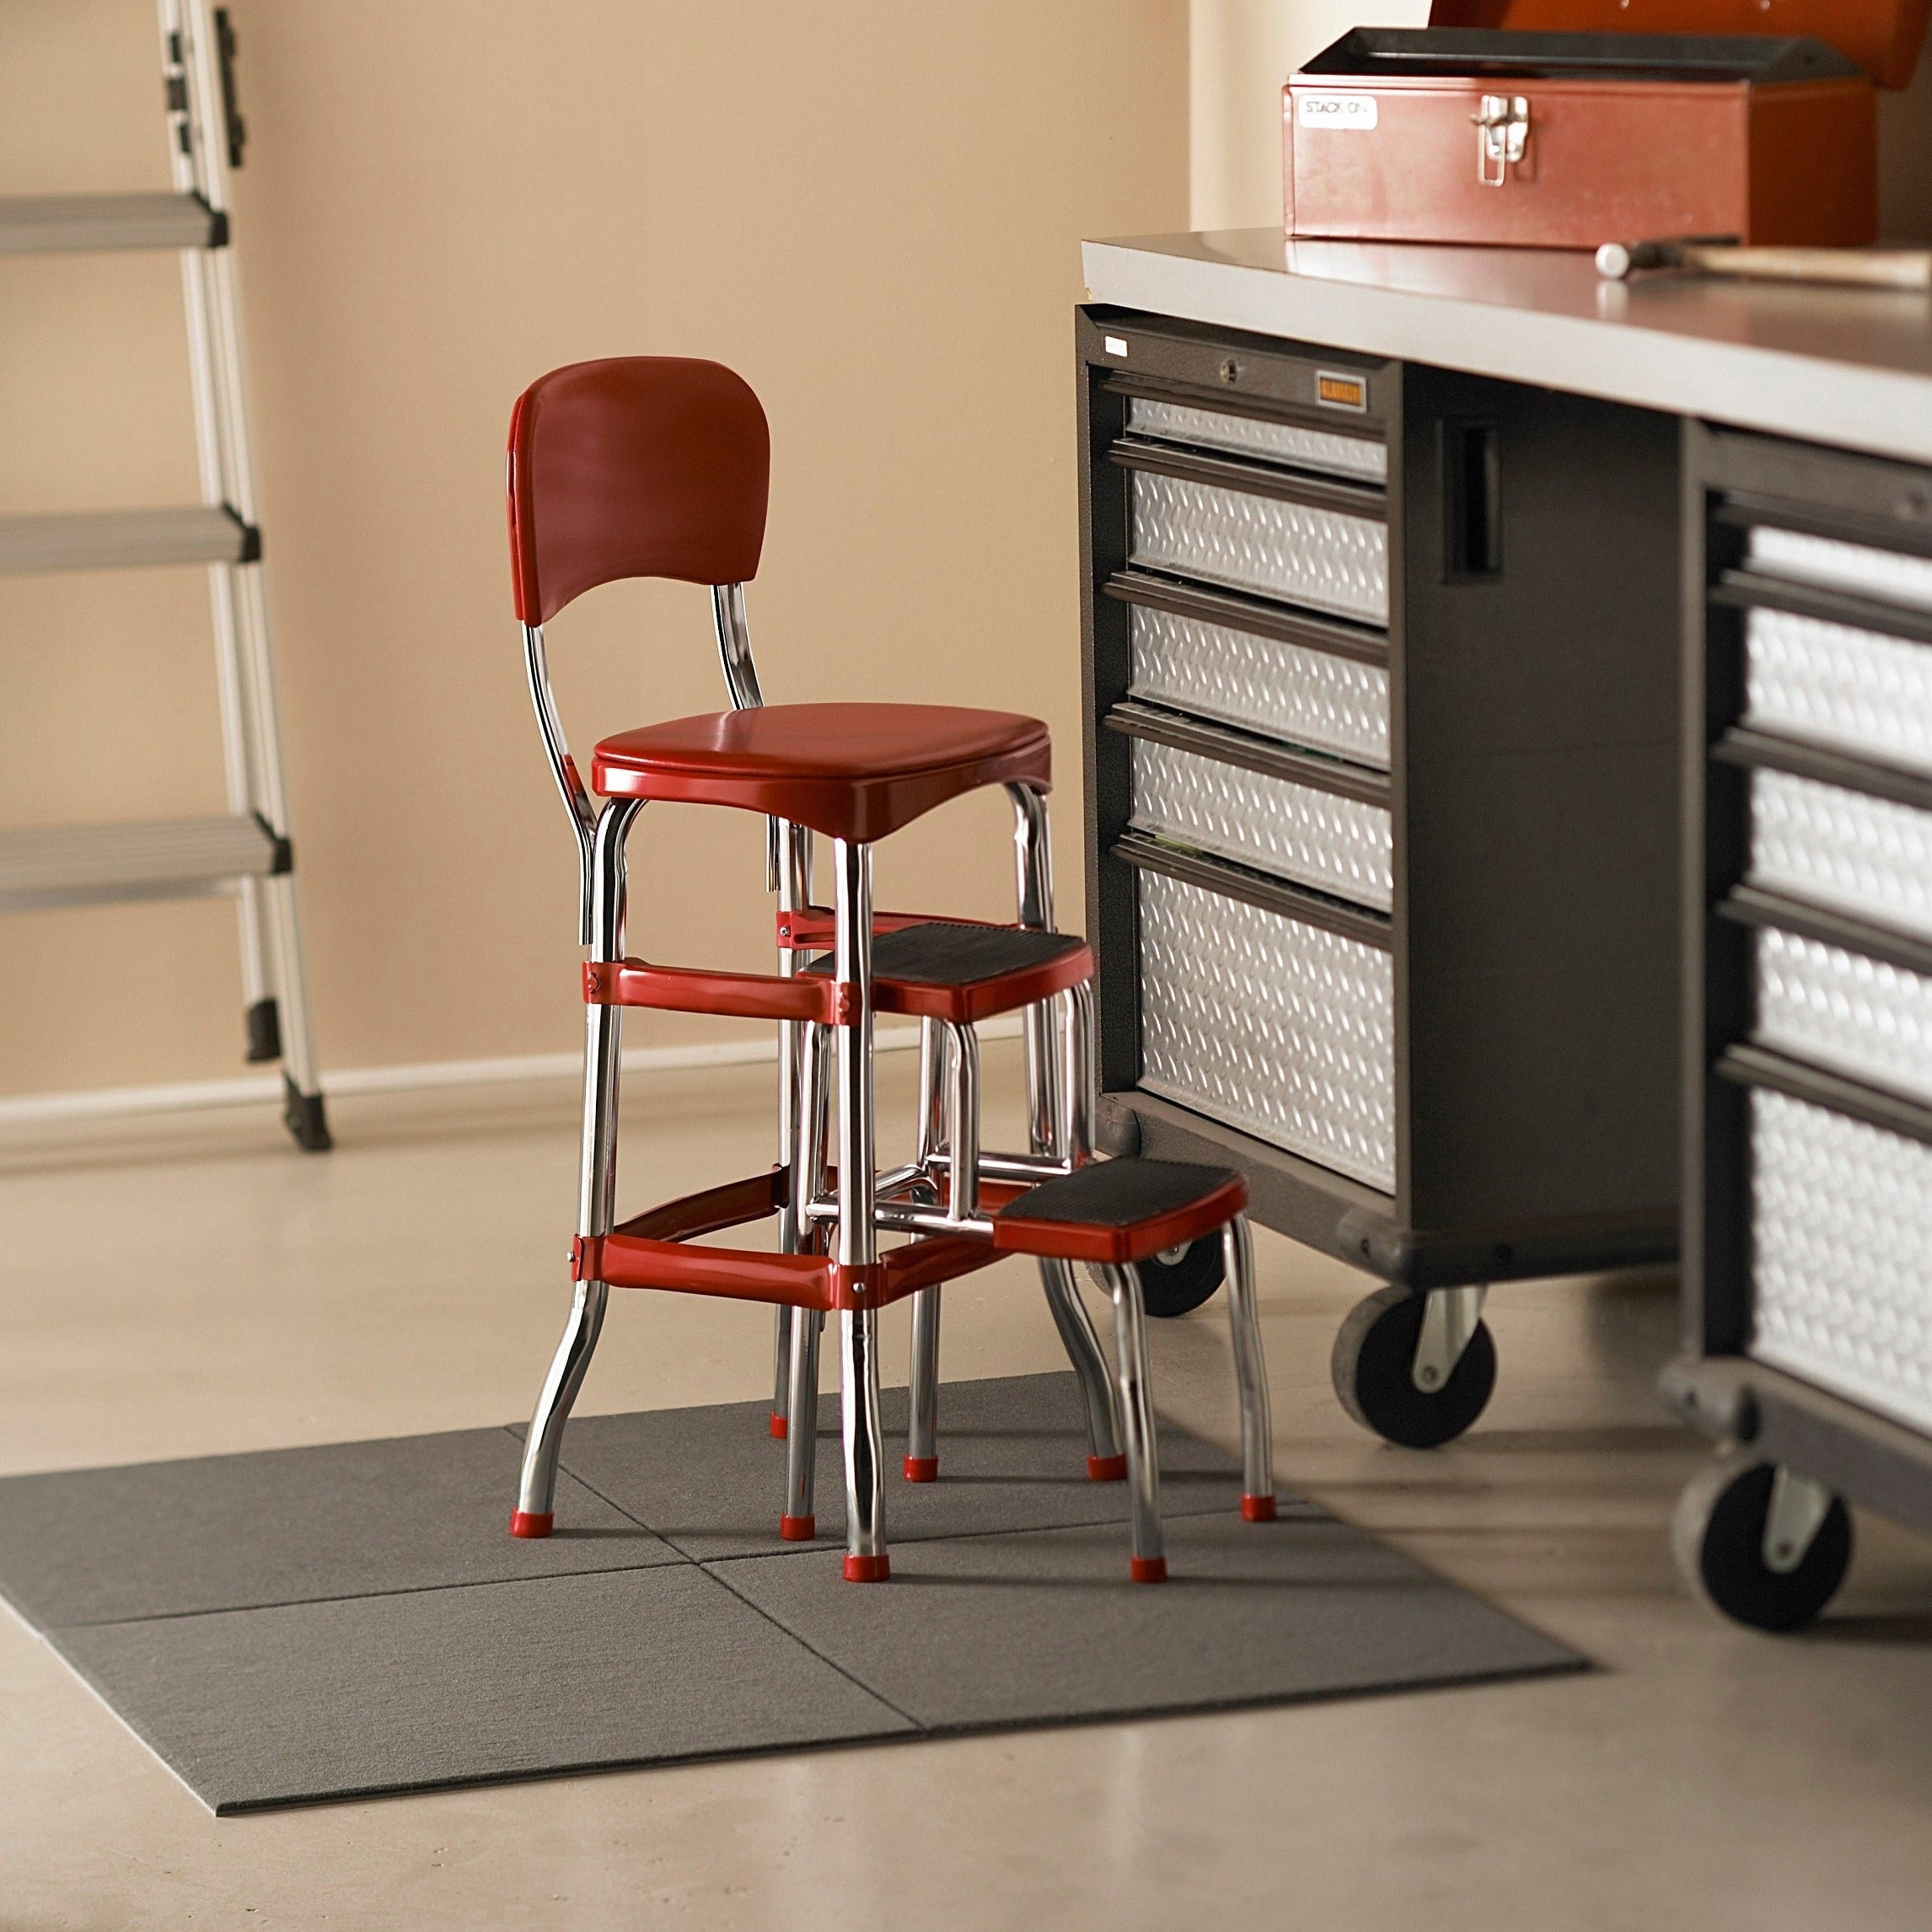 Cosco Retro Vintage Convertible Counter Chair Step Stool Overstock 8026500